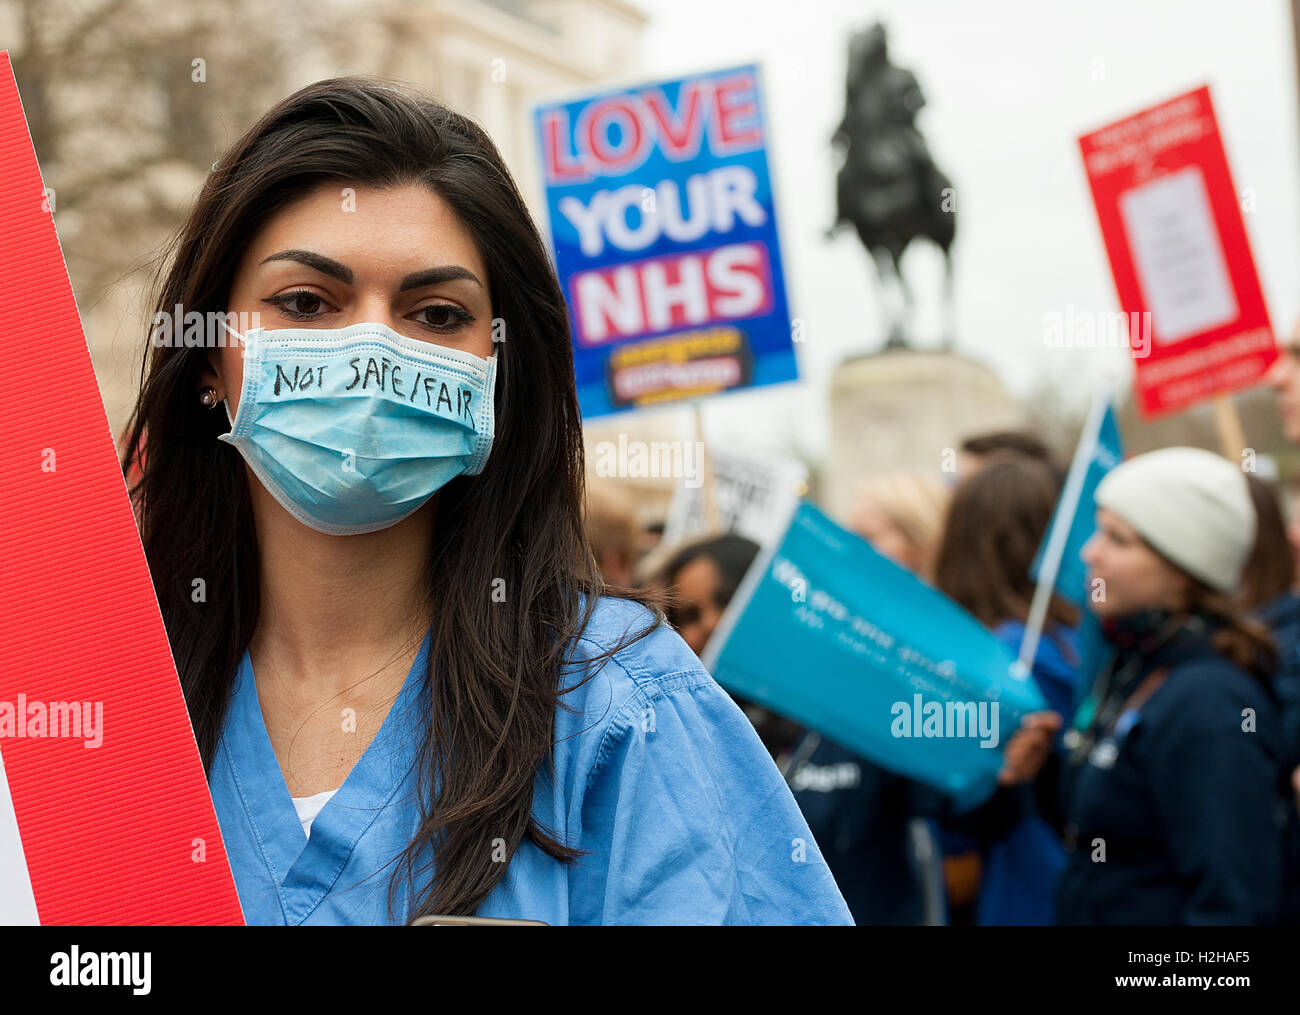 London, UK. 6th February 2016. EDITORIAL - Junior doctors rally, in protest of government plans to change NHS doctor - Stock Image